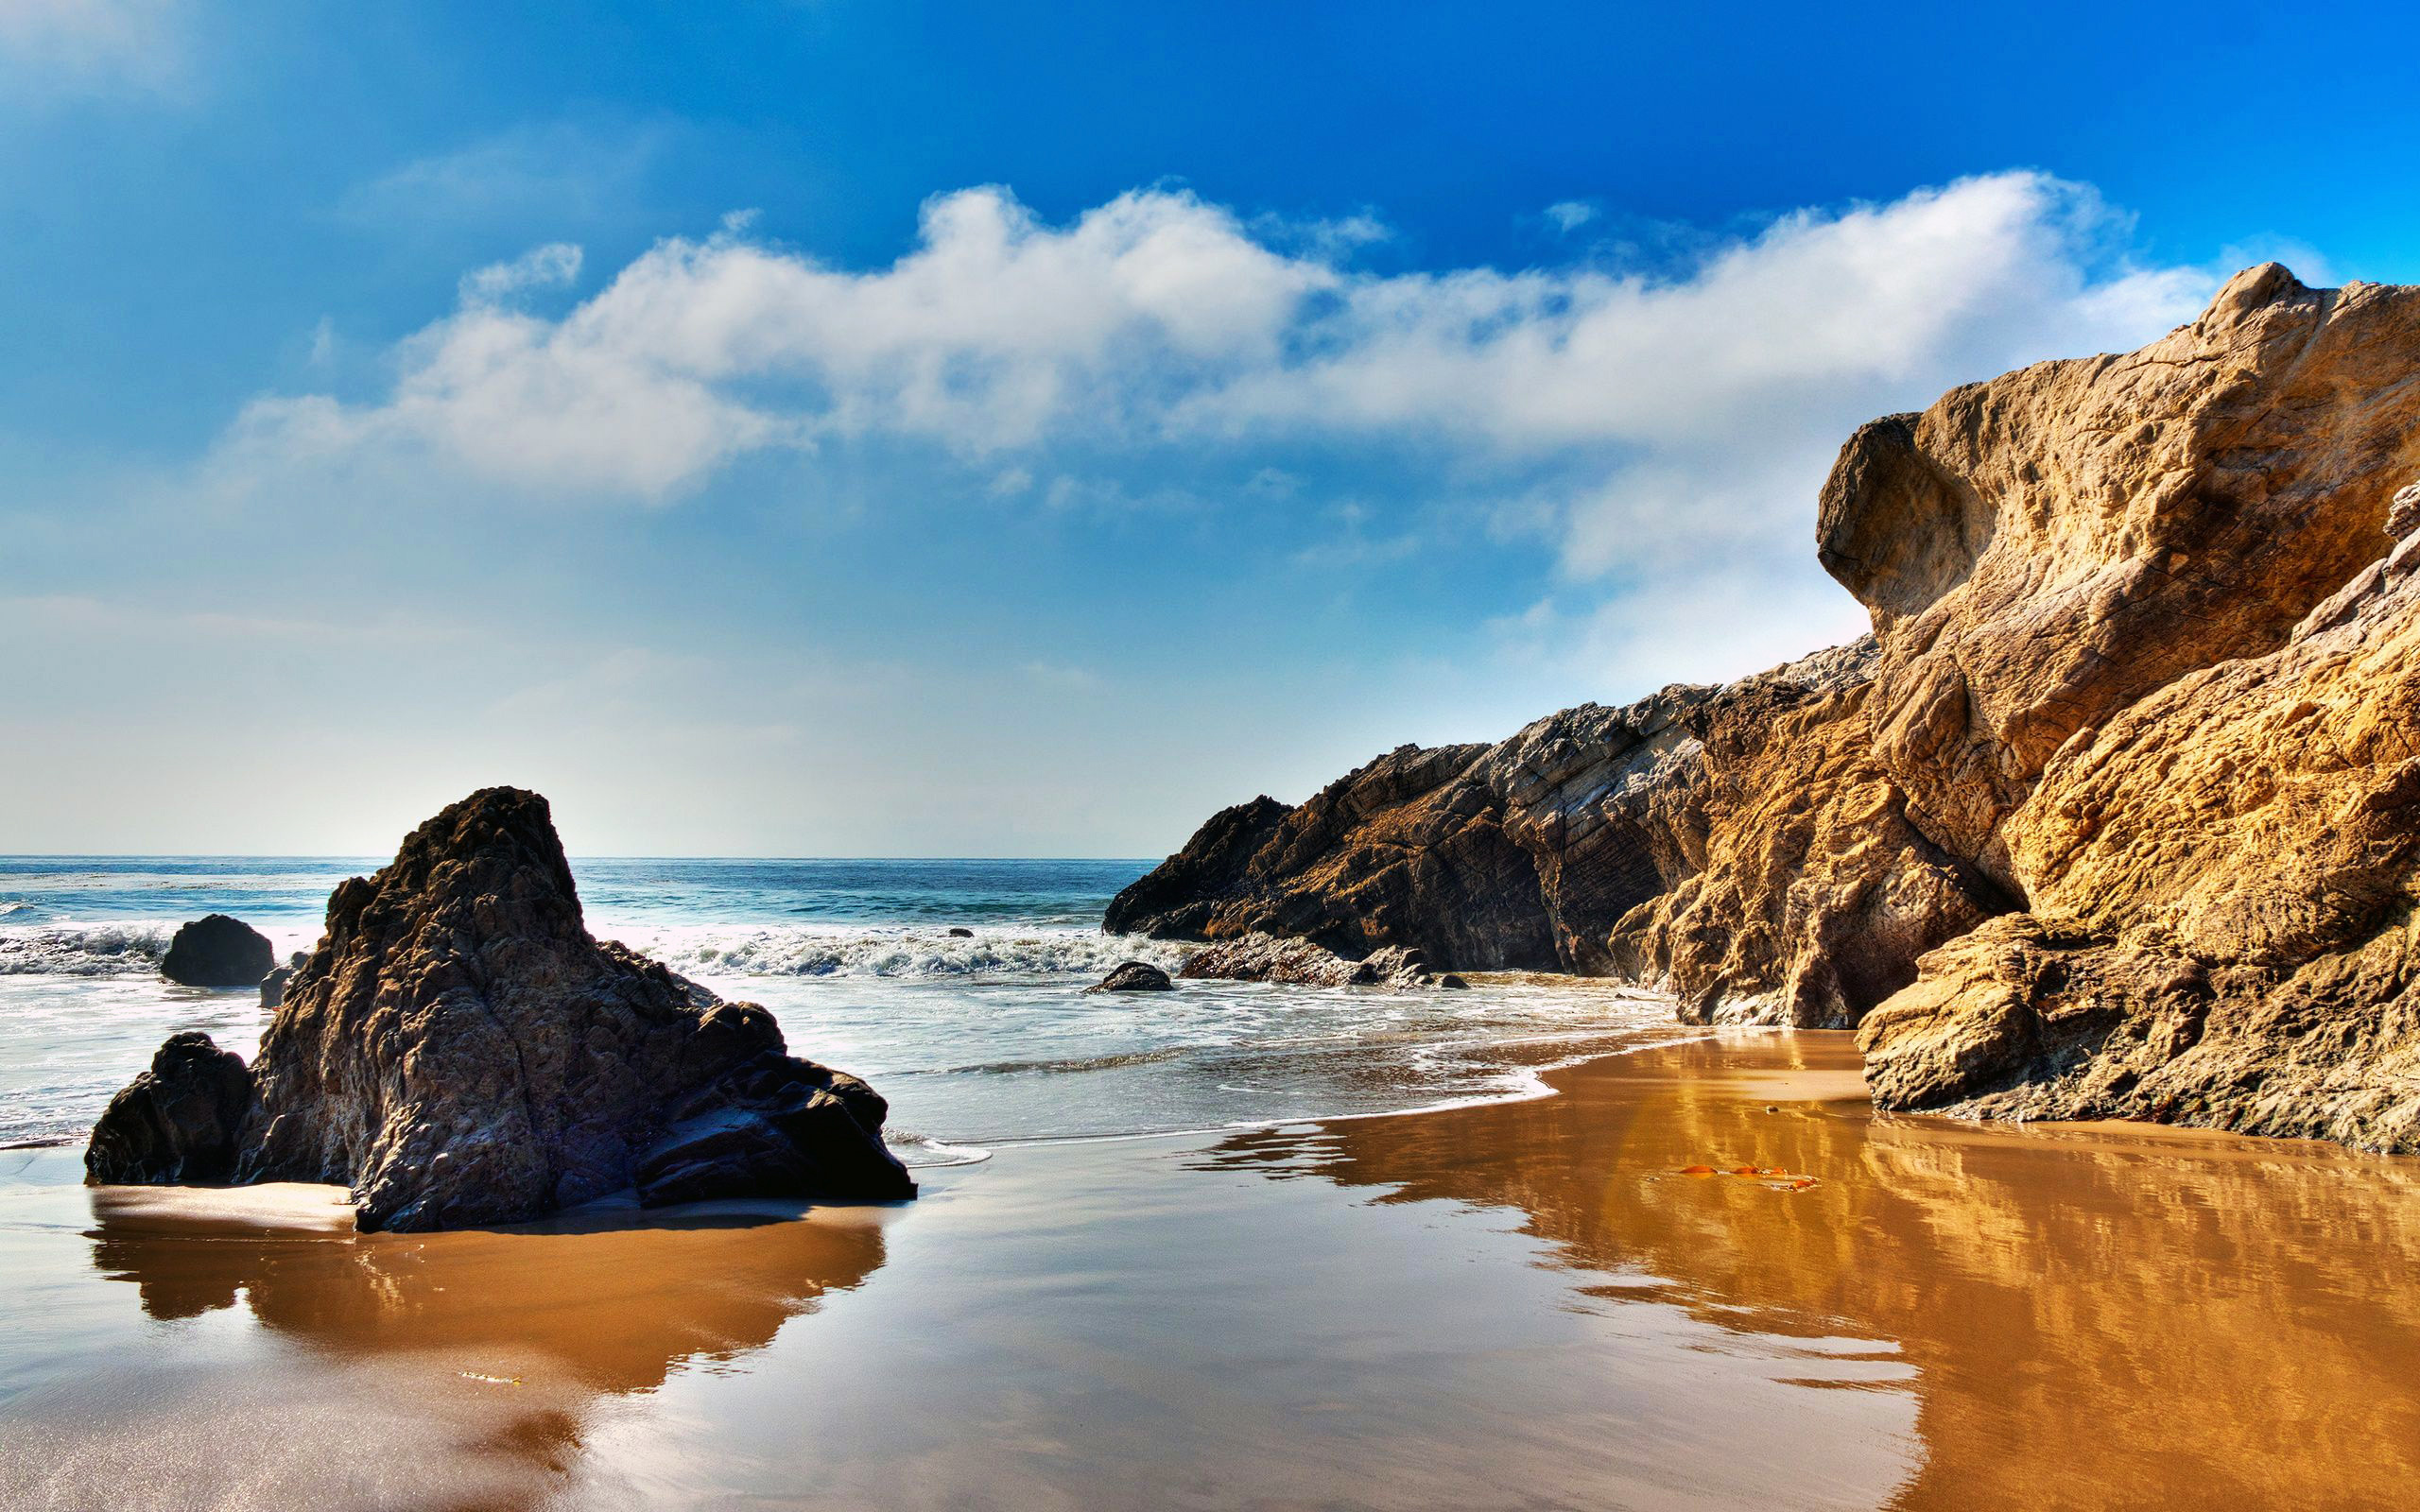 The wallpaper of beach at the Pacific Ocean in Malibu California 2560x1600